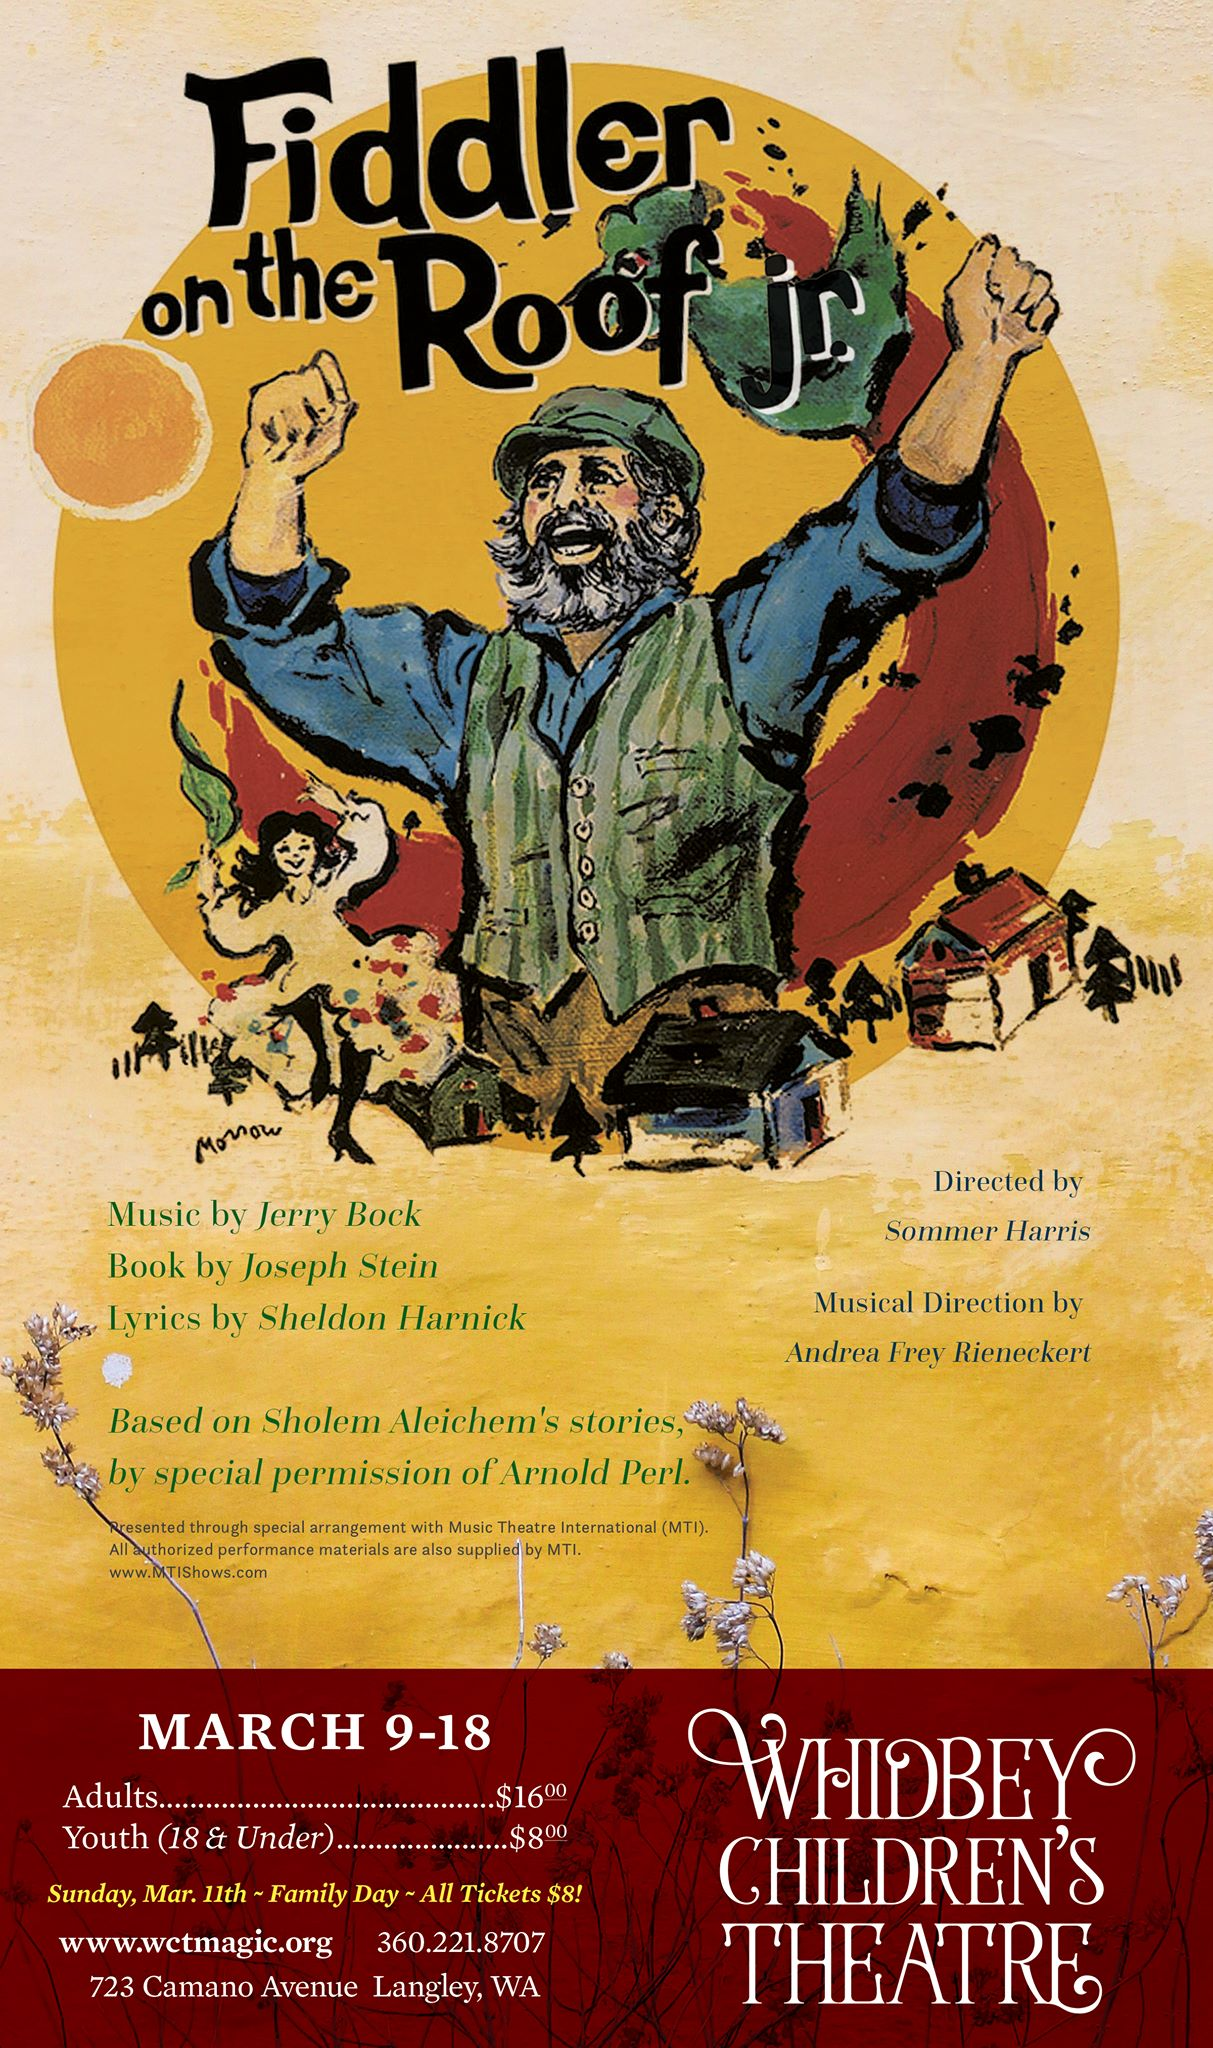 Whidbey-Childrens-Theatre_Fiddler-on-the-Roof-jr